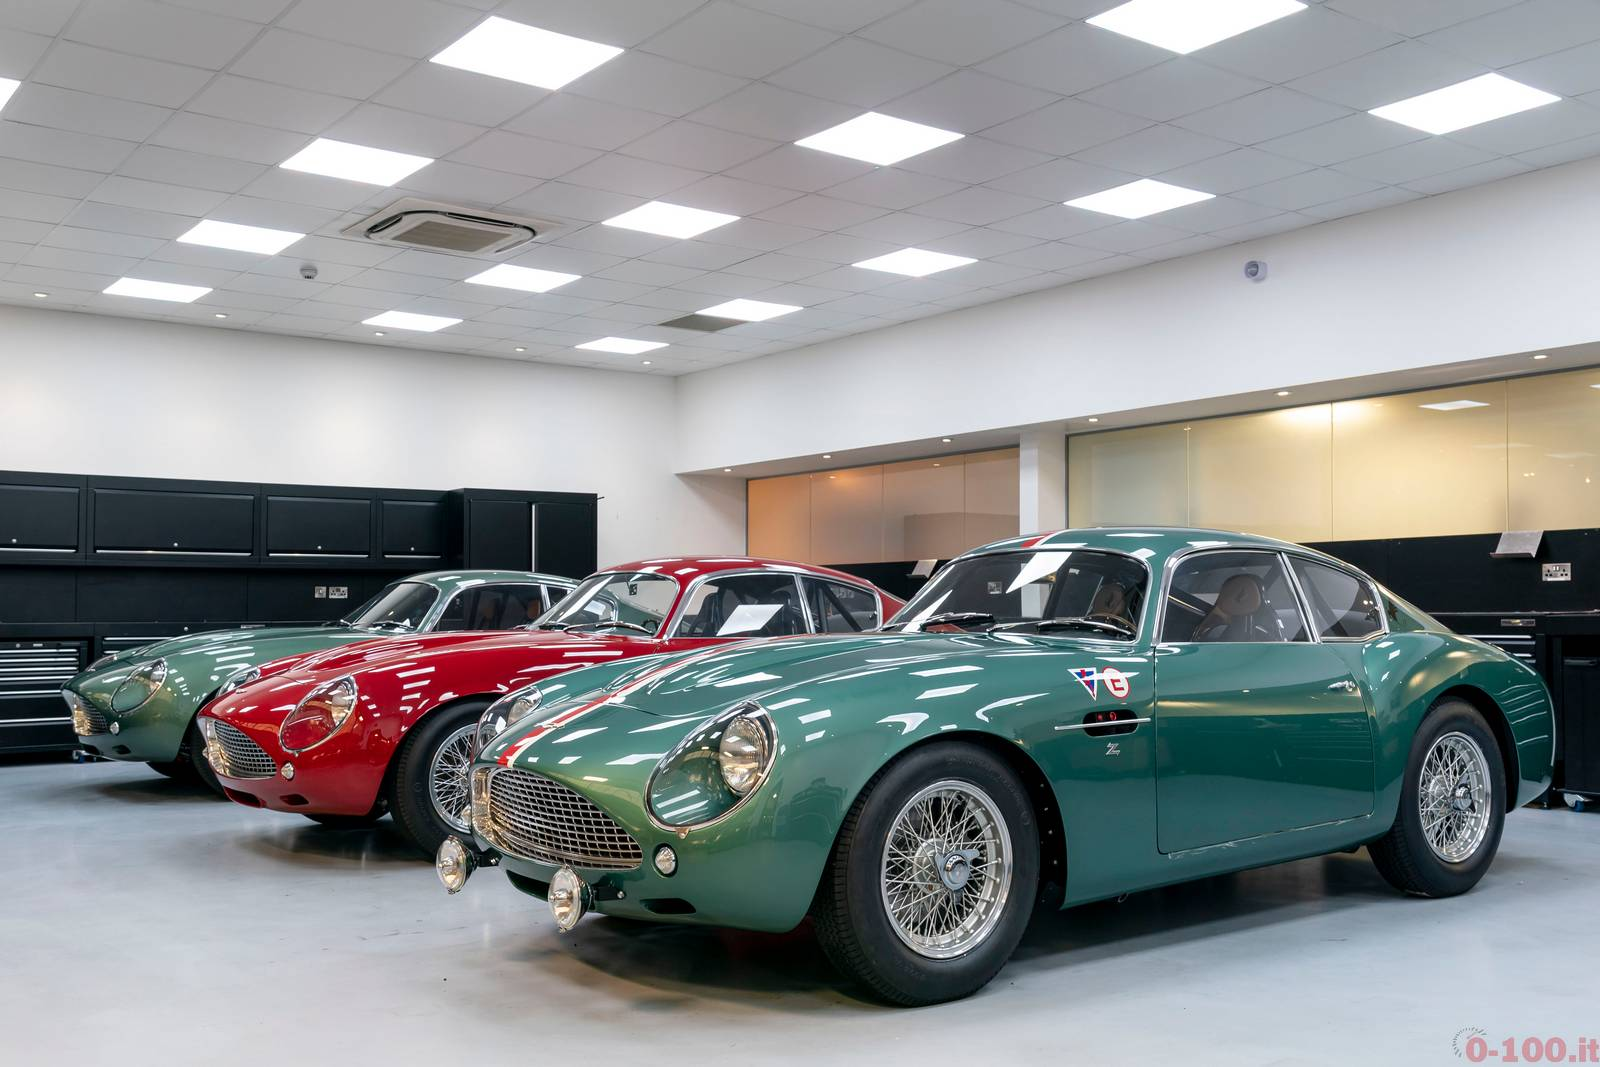 martin_db4_gtz_sanction_3_zagato_centenary_collection_0-100_2